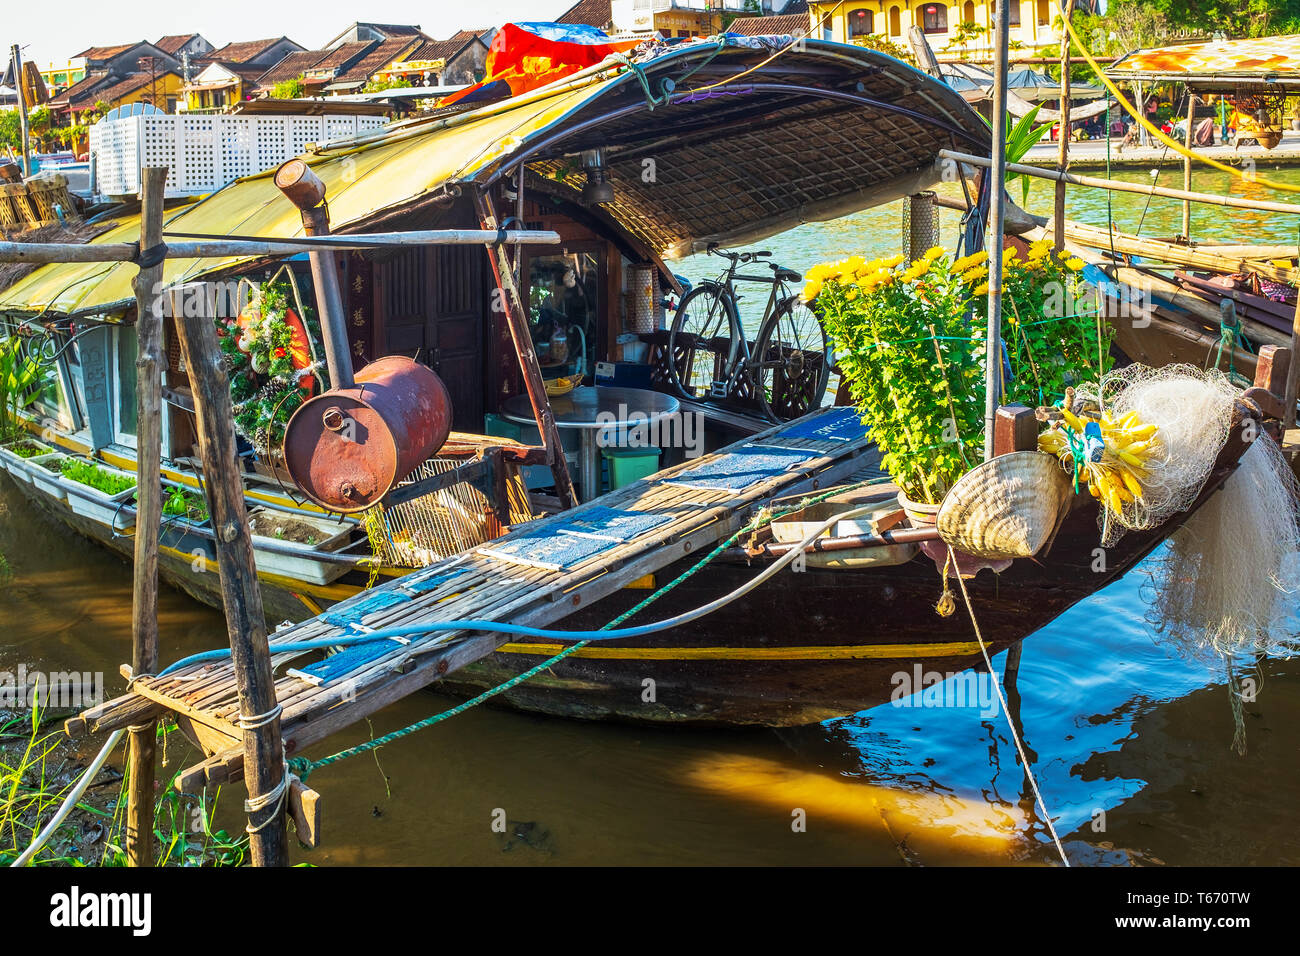 Traditional Vietnamese house boat on Son Thu Bon river at Hoi An, Quang Nam Provence, Vietnam, Asia - Stock Image